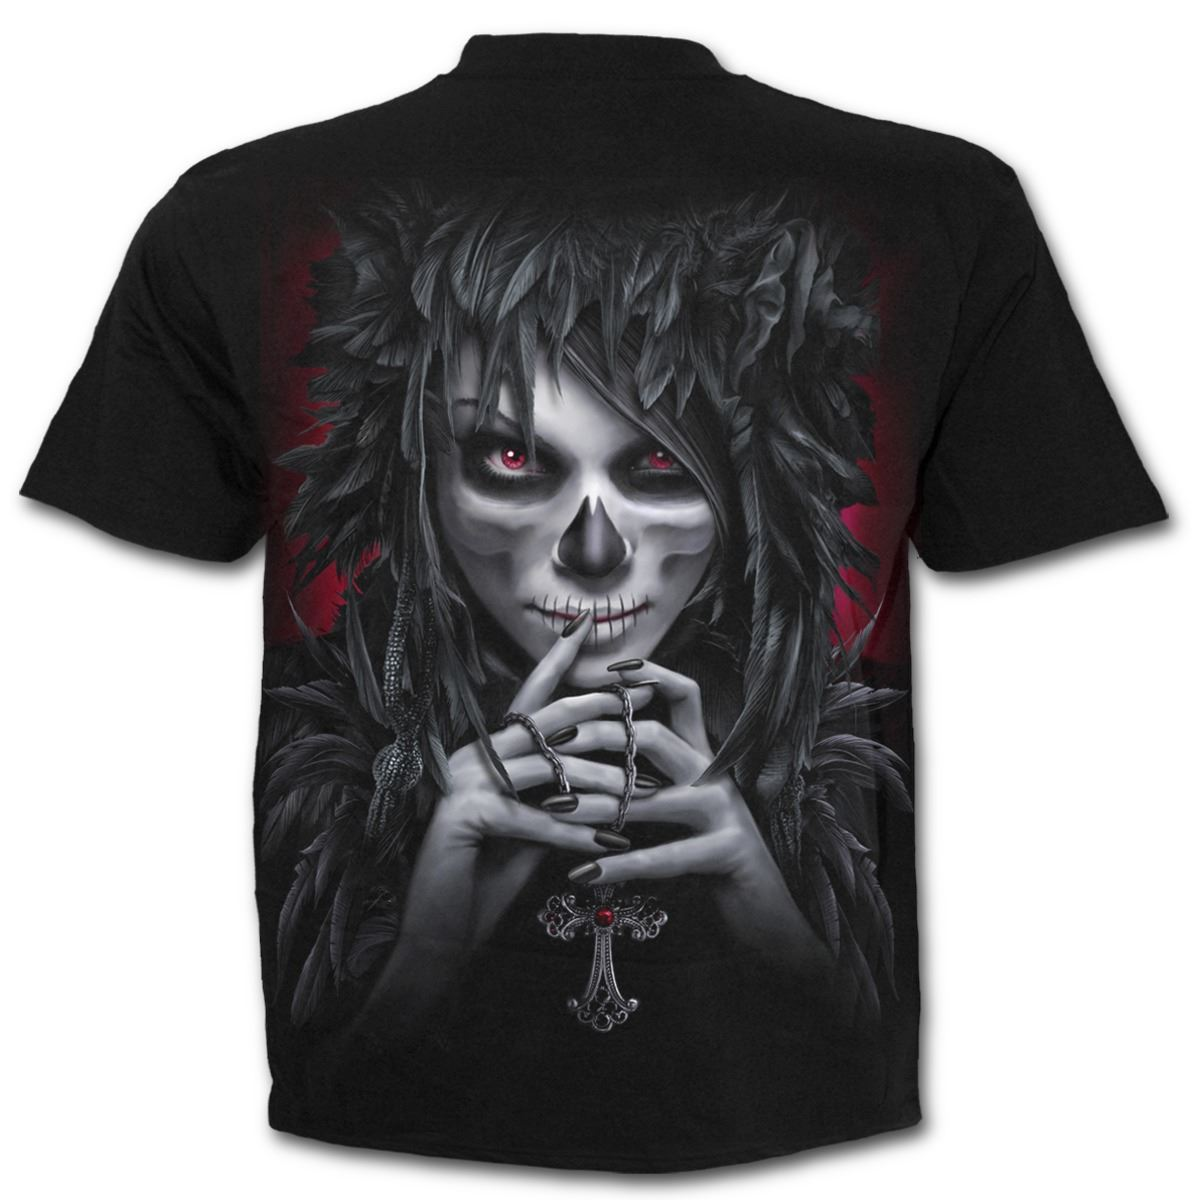 Spiral-Direct-Day-Of-The-Goth-Skeleton-Zombie-Black-Short-Sleeved-T-Shirt thumbnail 8